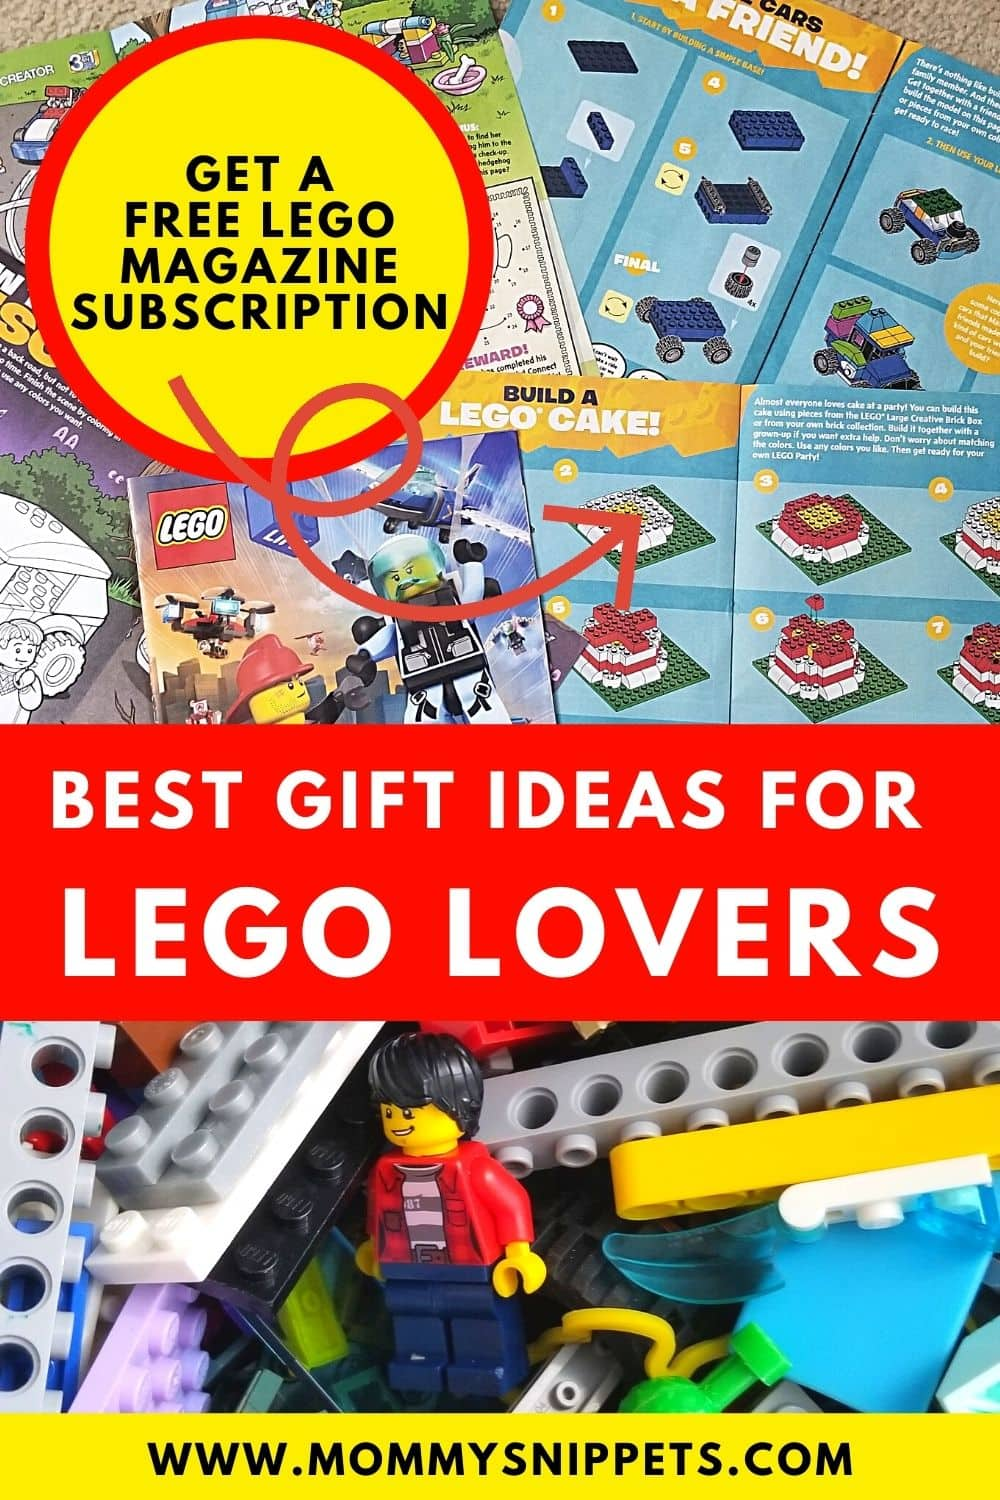 A Free LEGO Life Magazine Subscription and Gift Ideas for LEGO Lovers